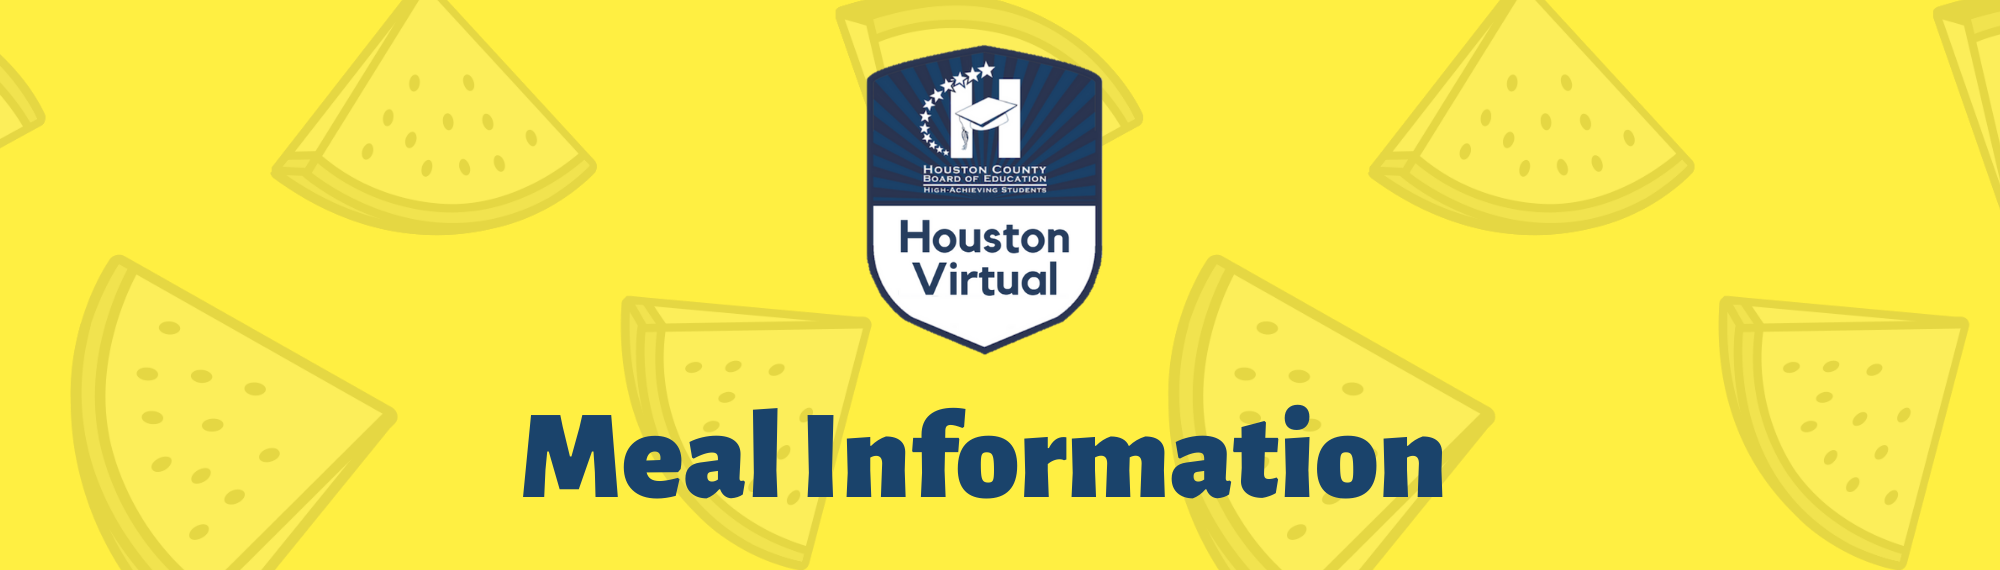 Houston Virtual Meal Information